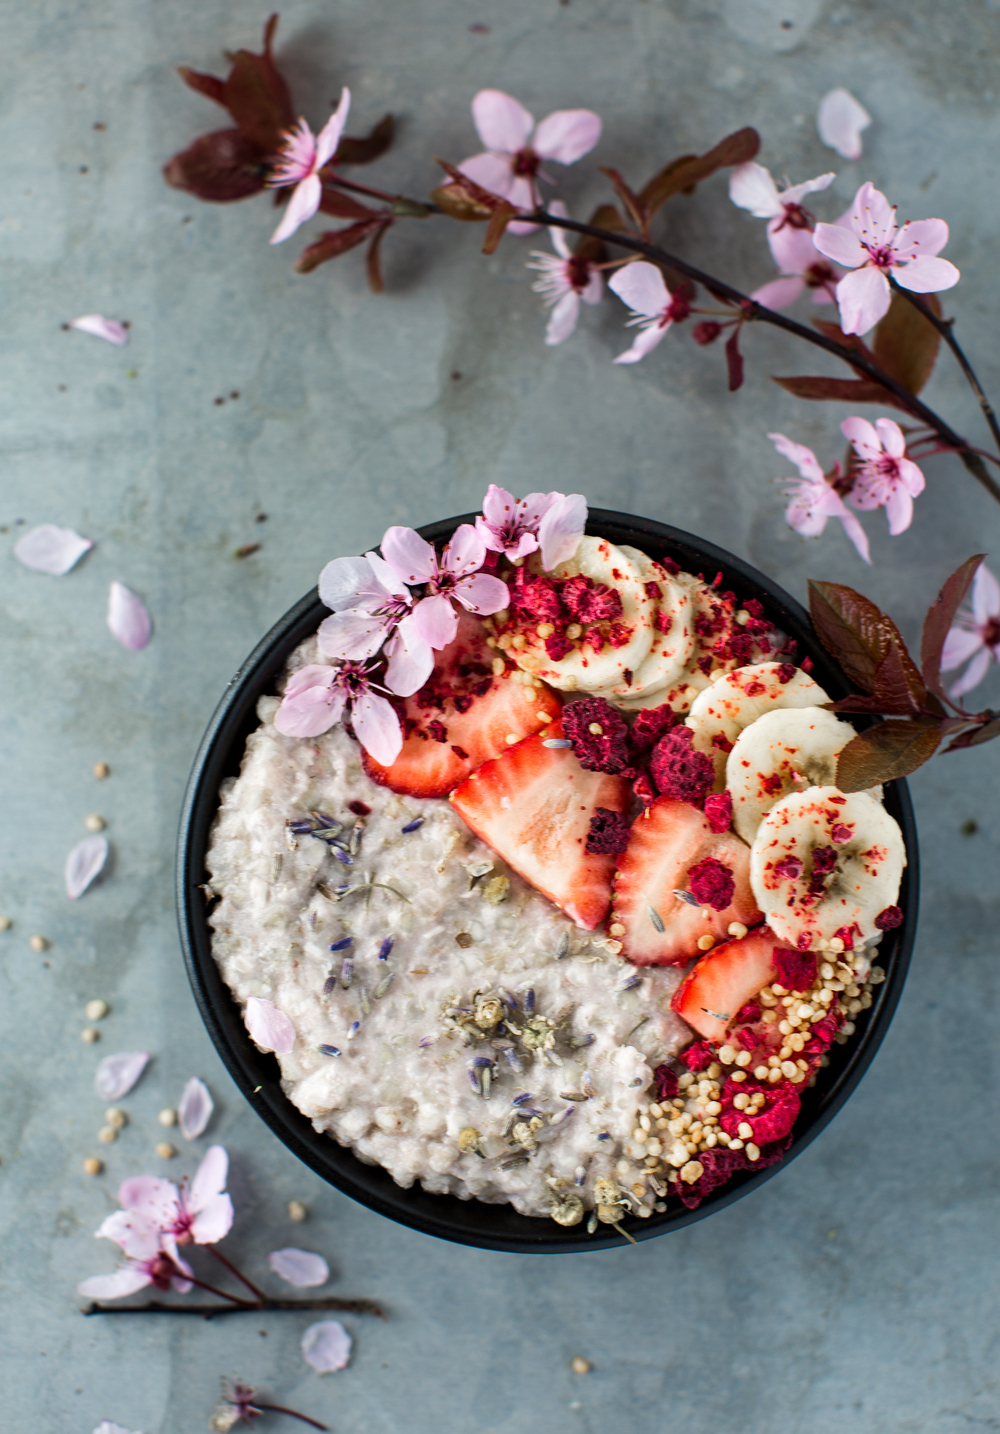 5-Breakfast-to-go-vanilla-buckwheat-porridge | www.8thandlake